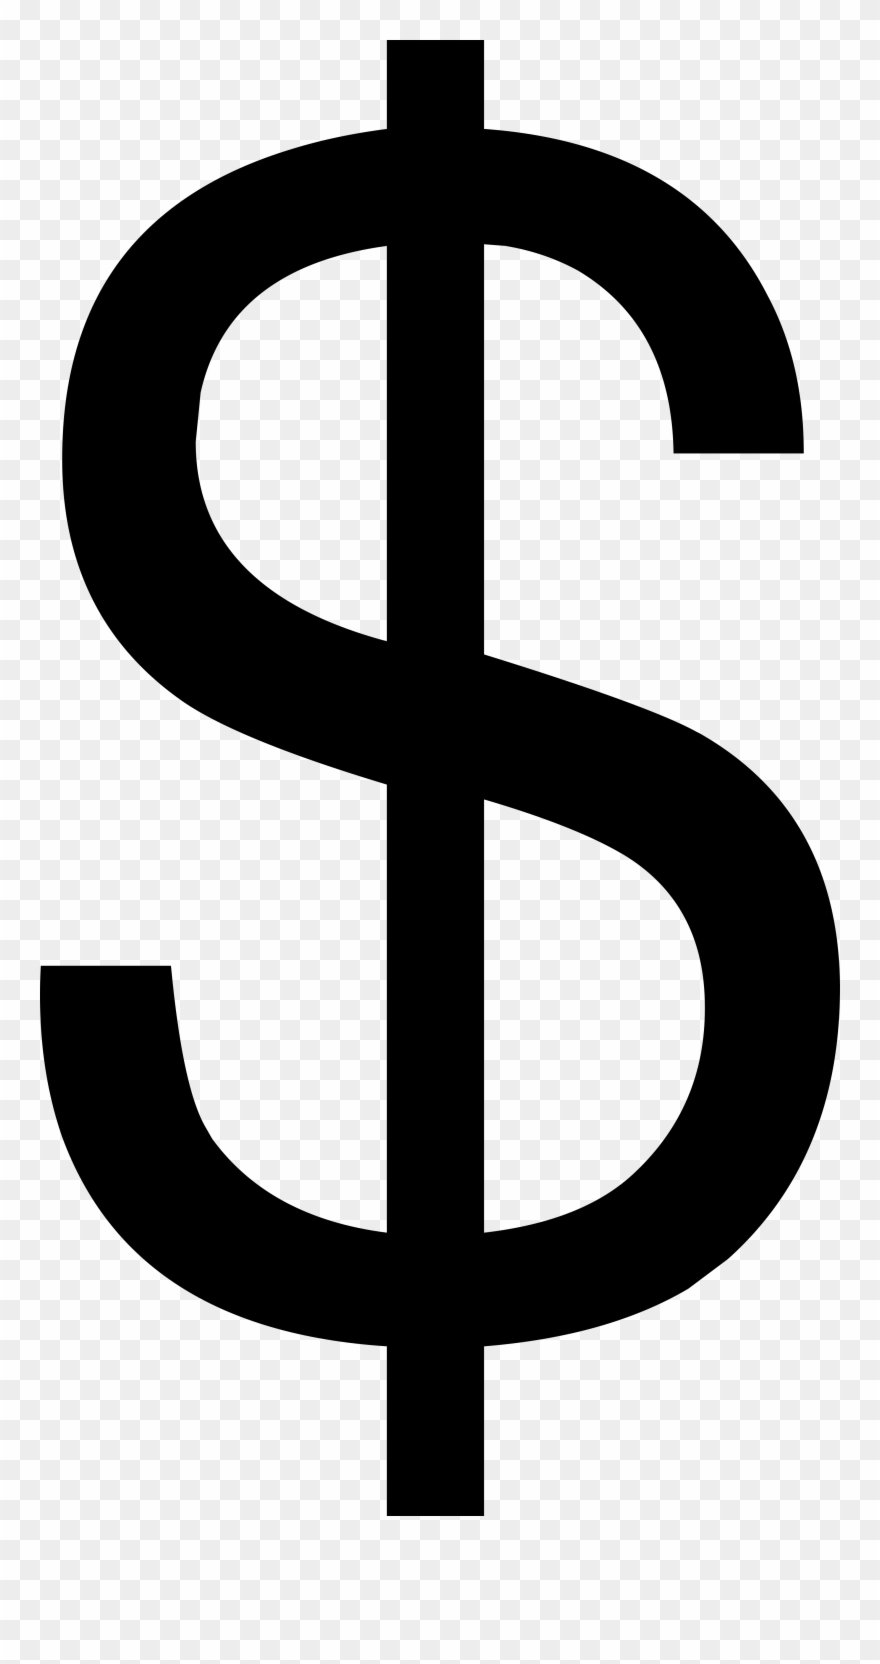 Money Sign Png.